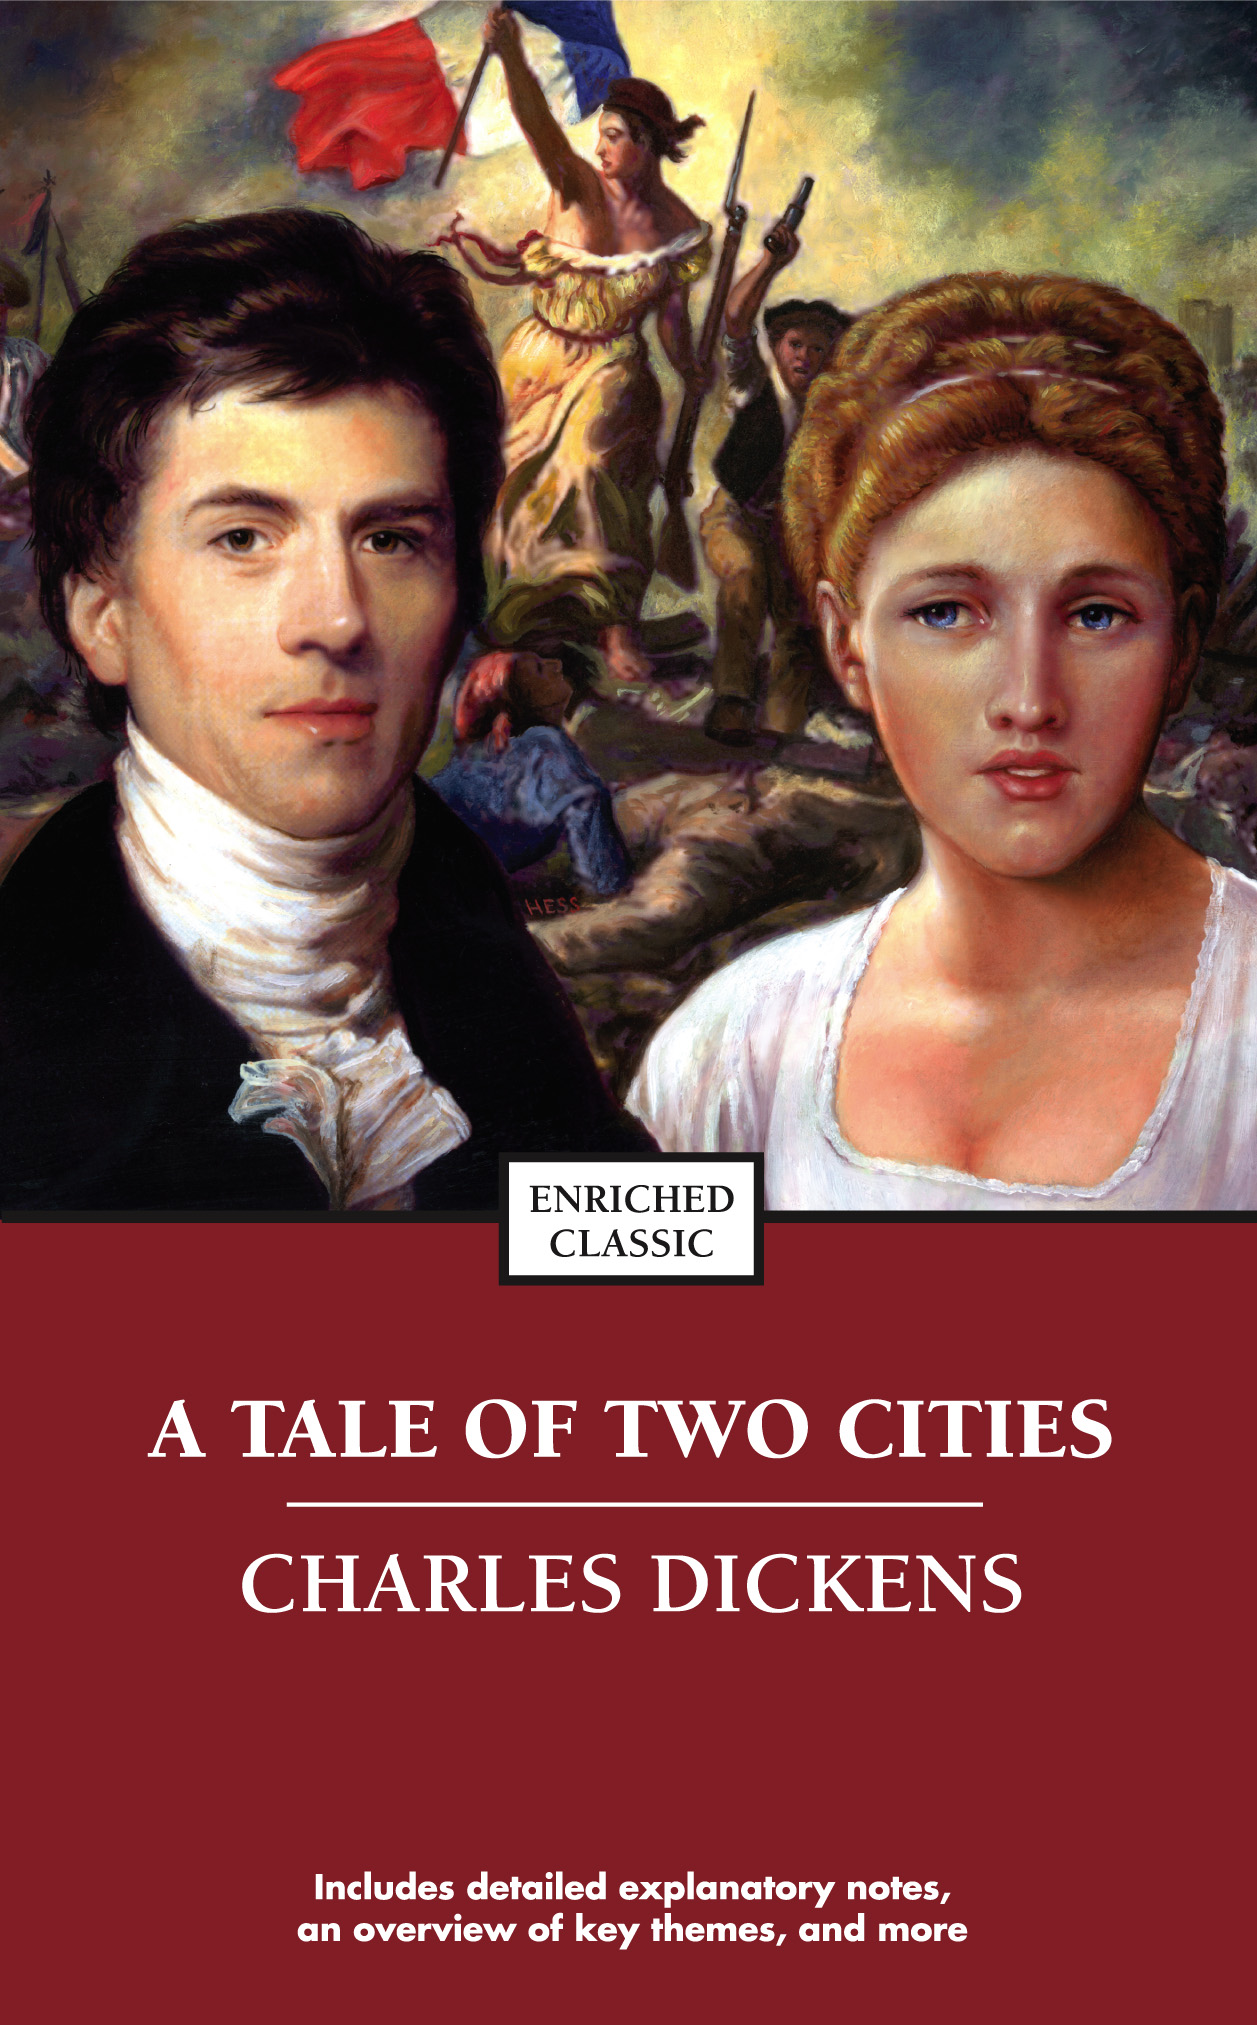 A Tale of Two Cities Critical Essays